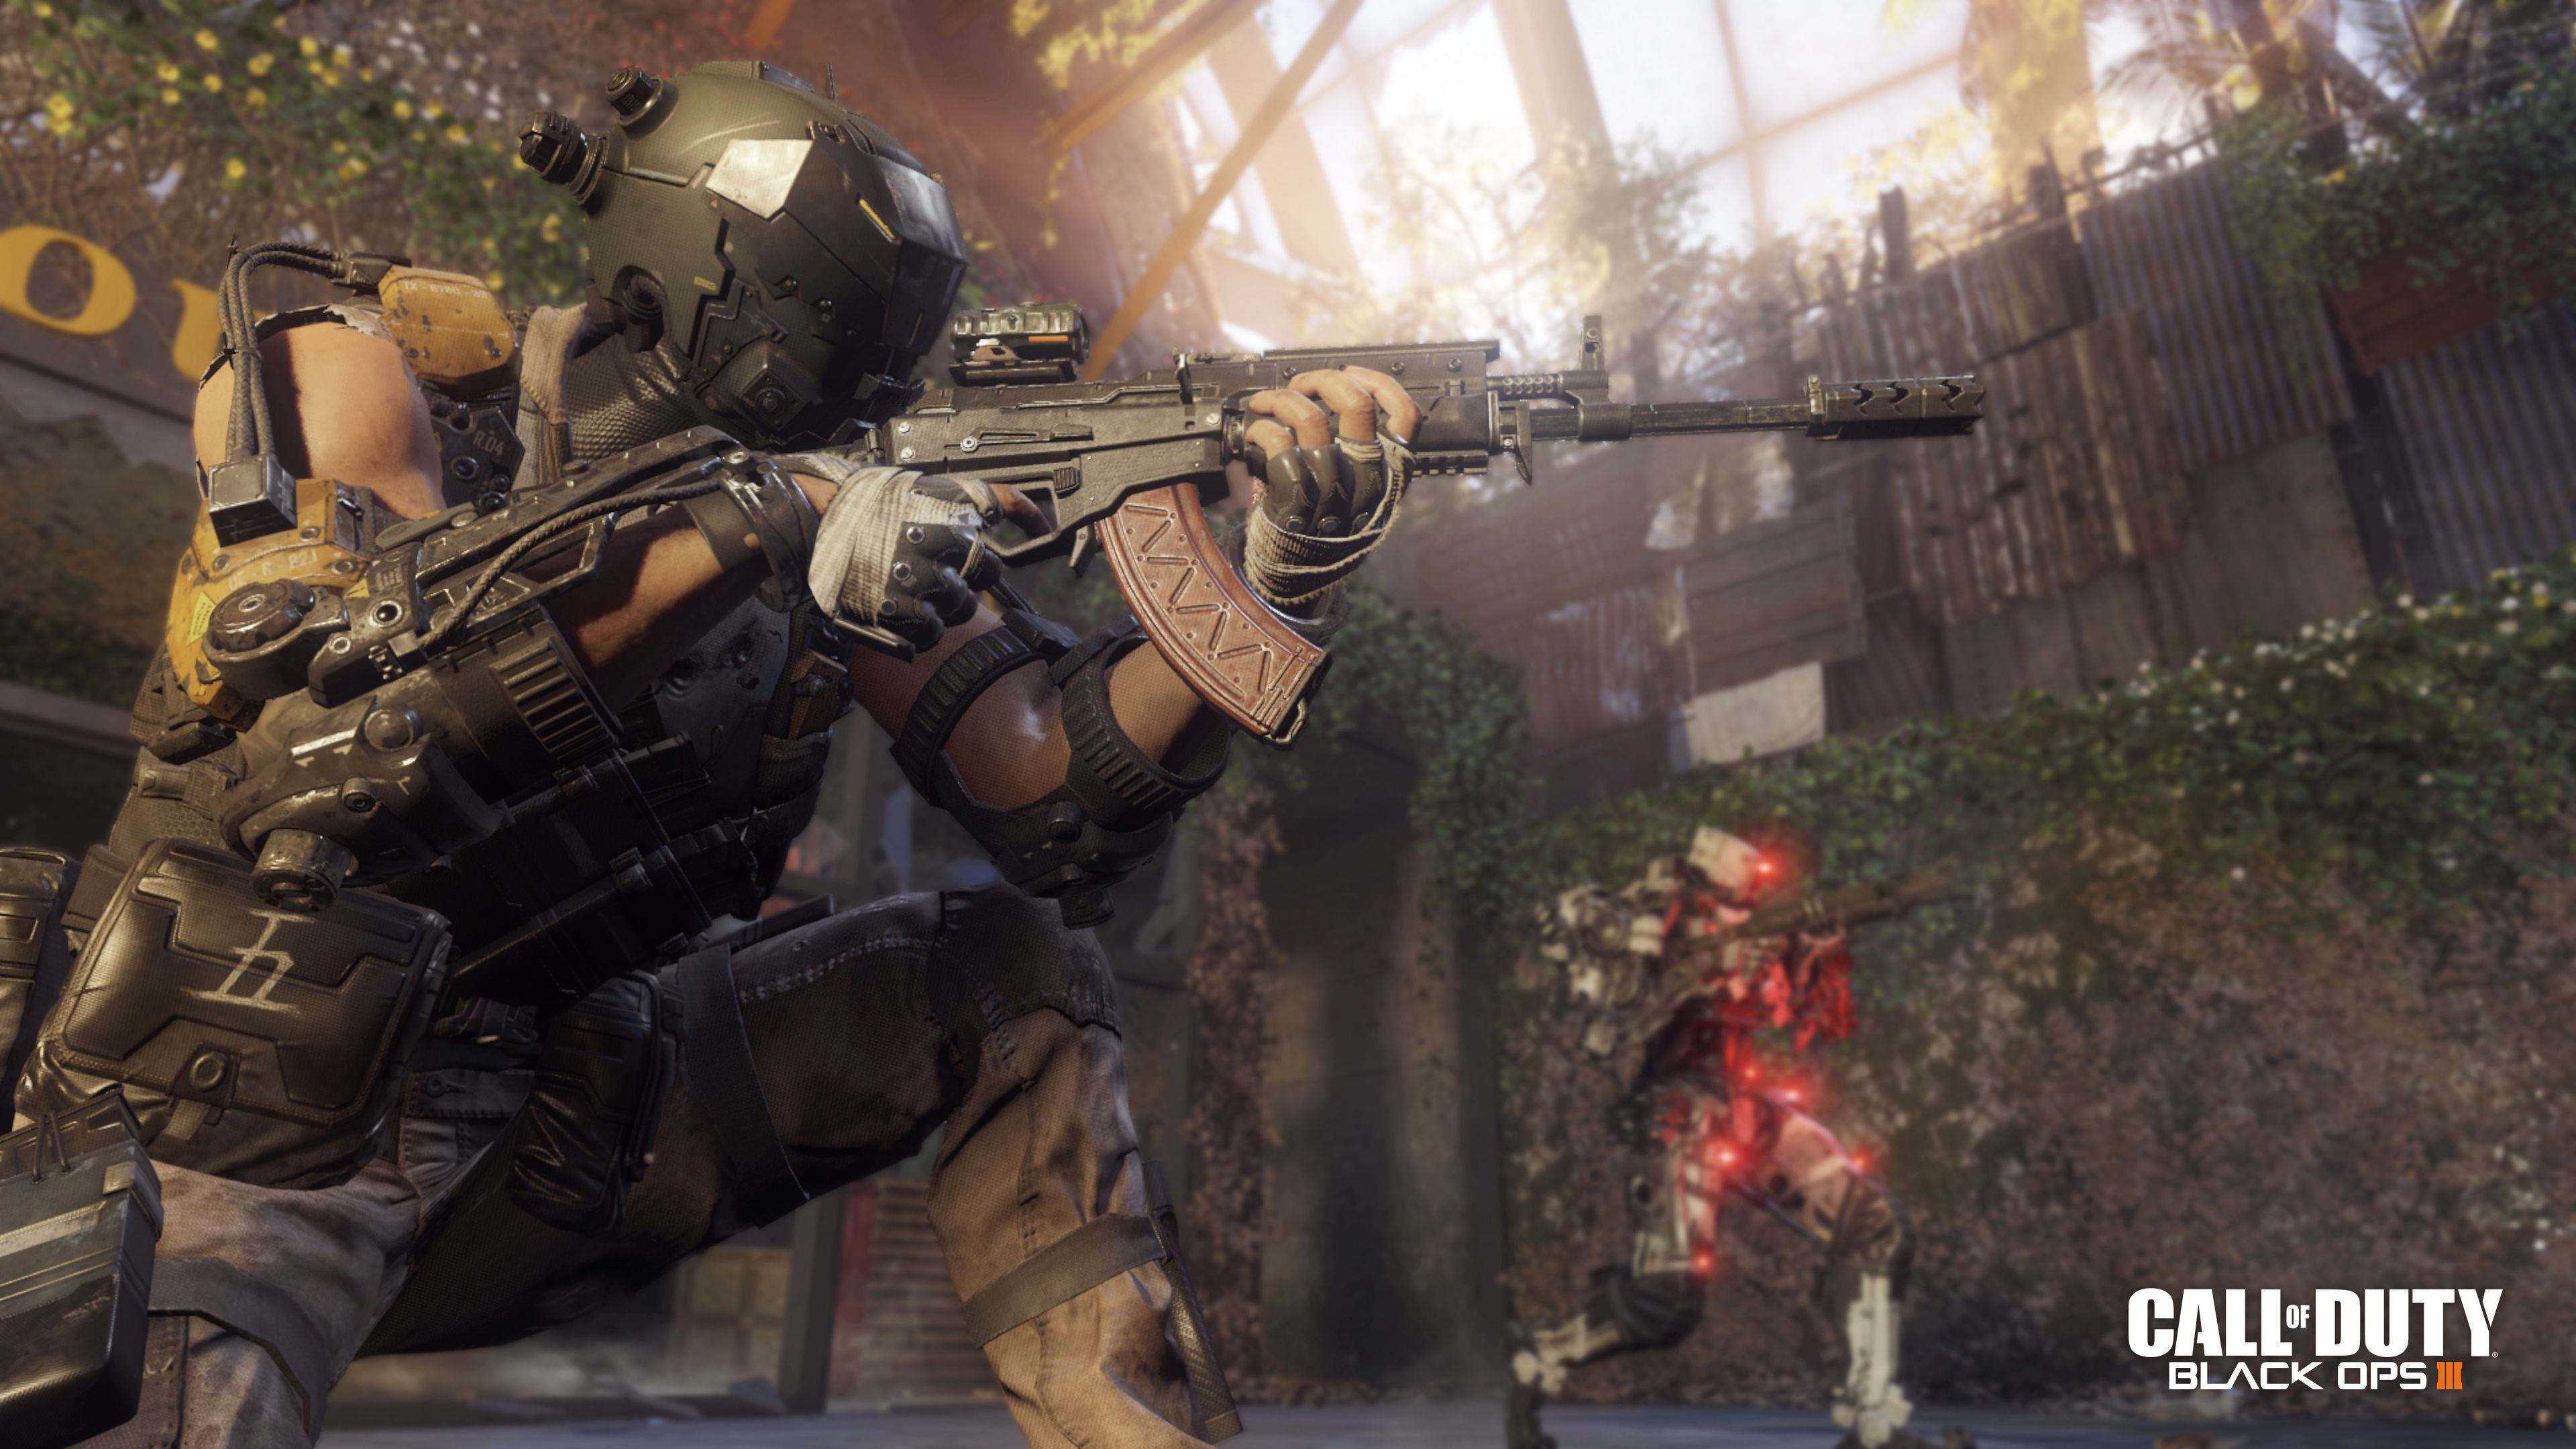 Call of Duty Black Ops 3 HD